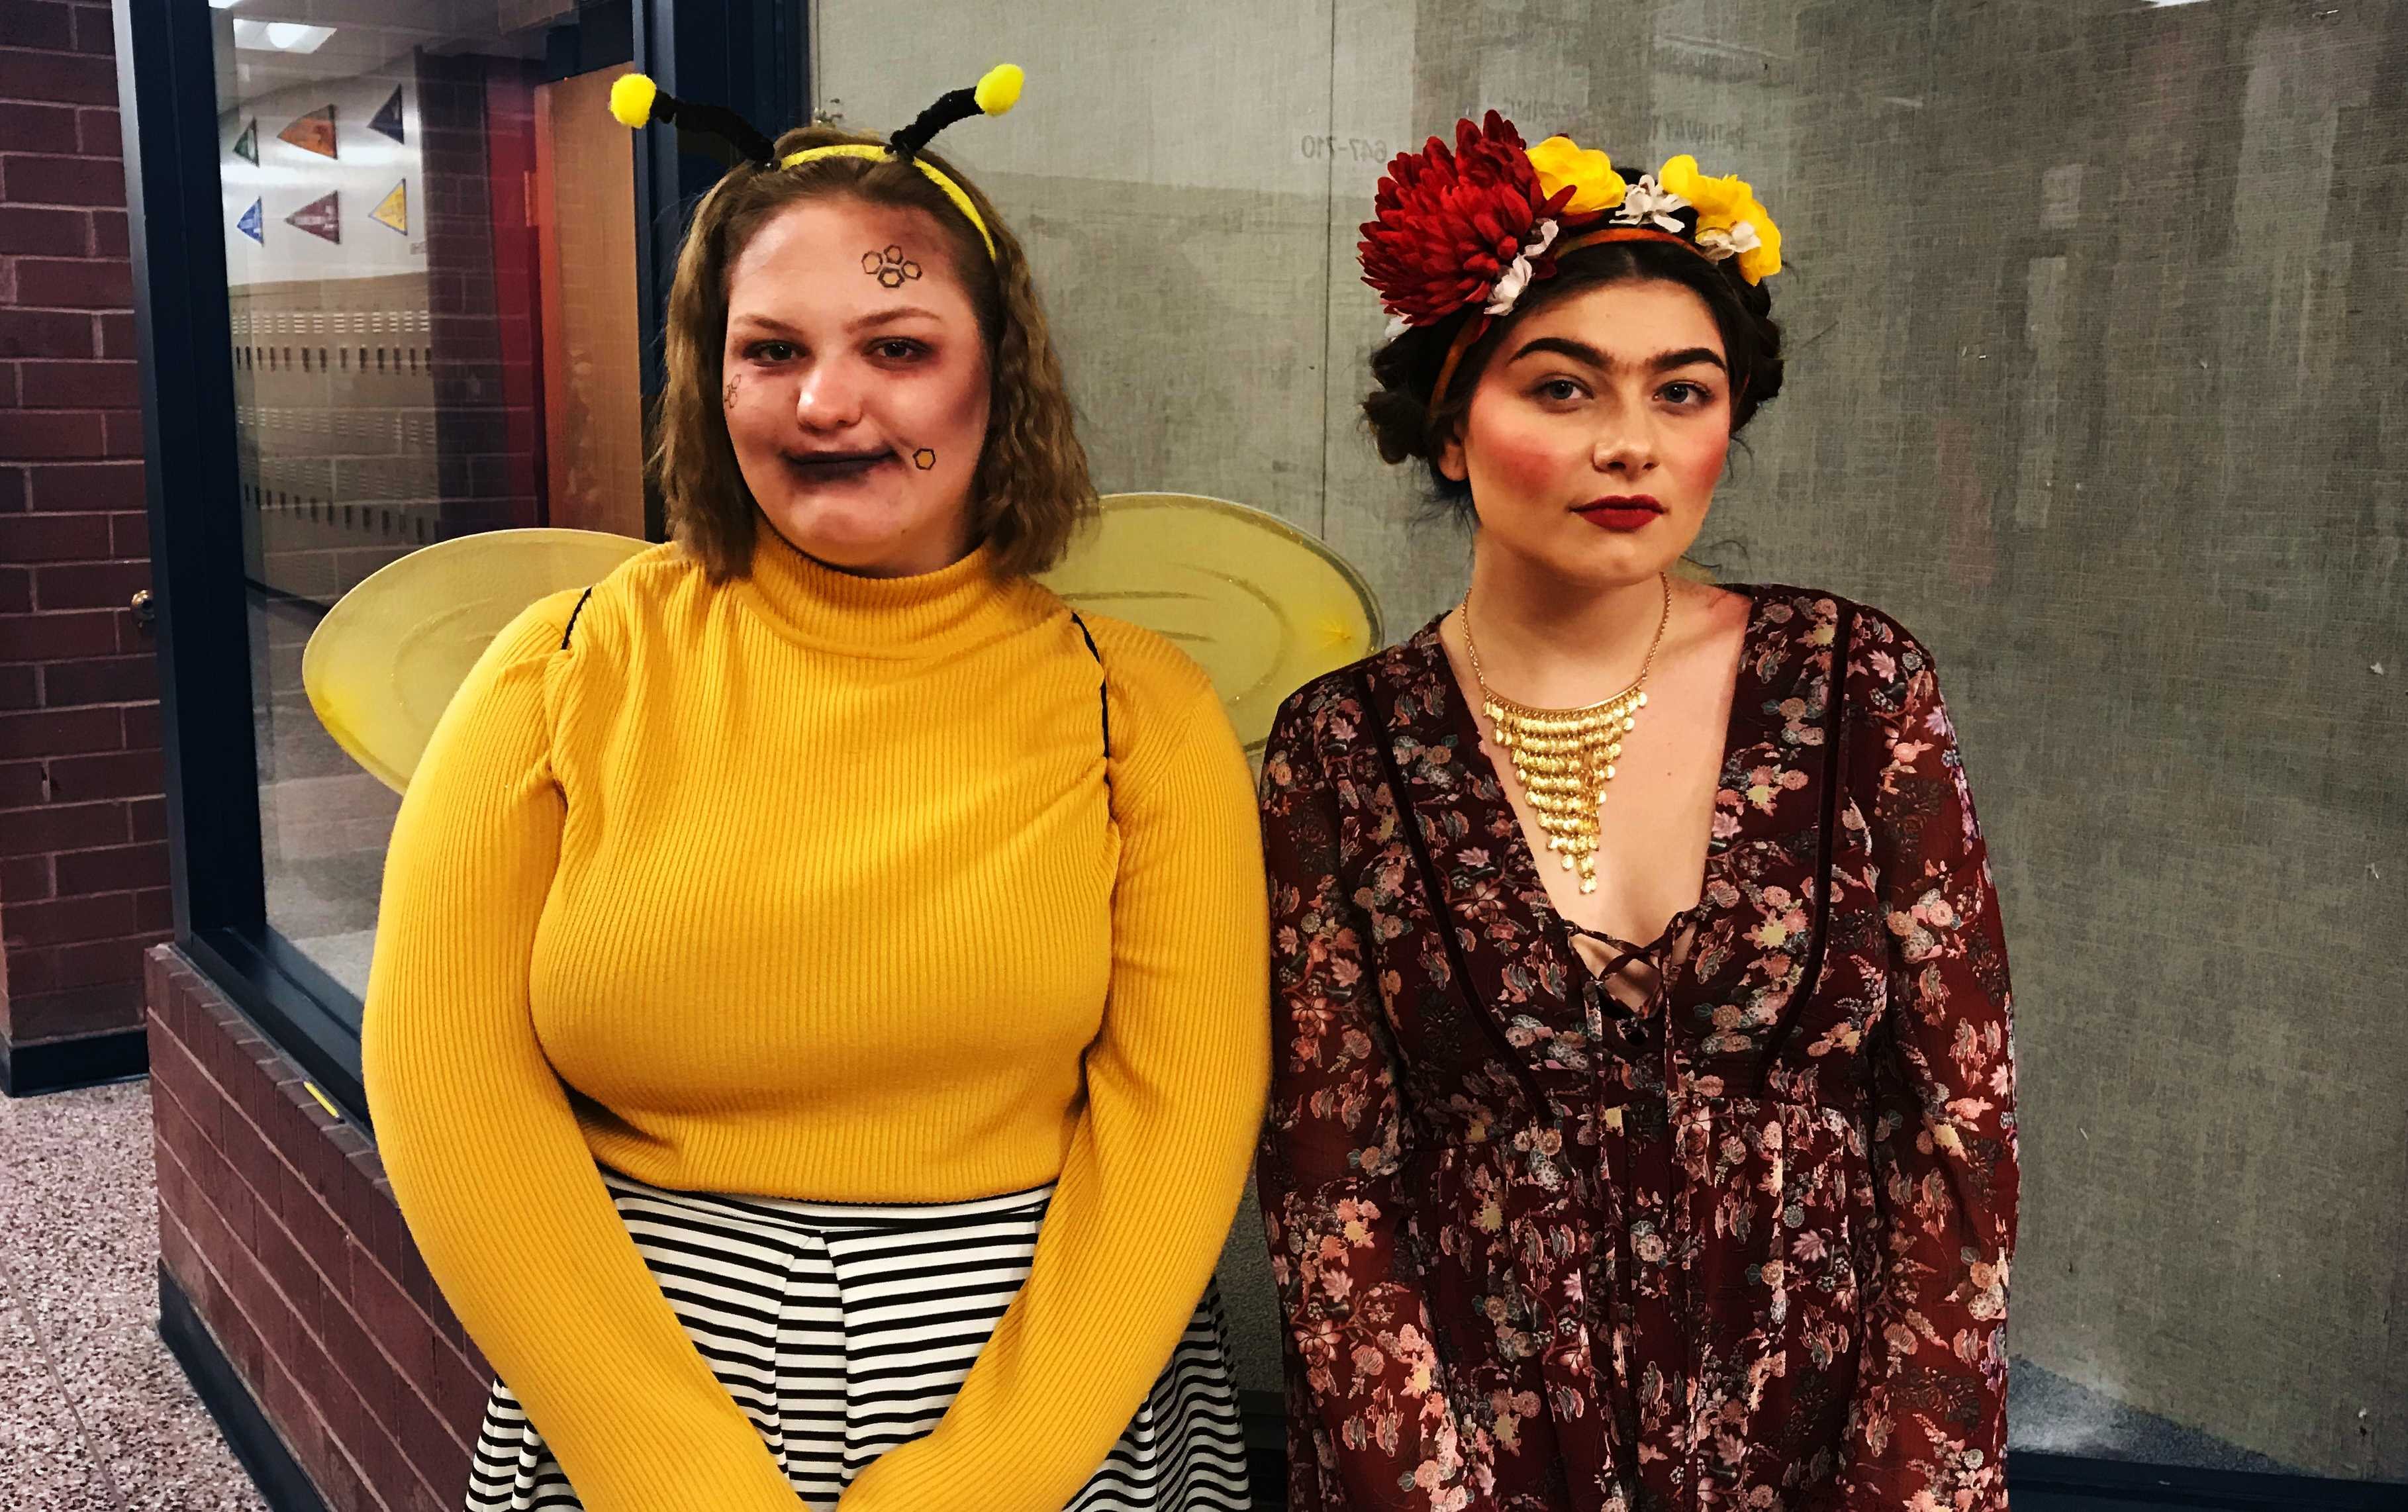 Feature Photo By: Jaylen Dunbar – Juniors Laura Good and Khloie Westback pose in their costumes in celebration of Halloween. Students who have donated $1 to Make-A-Wish are allowed to wear their costumes.